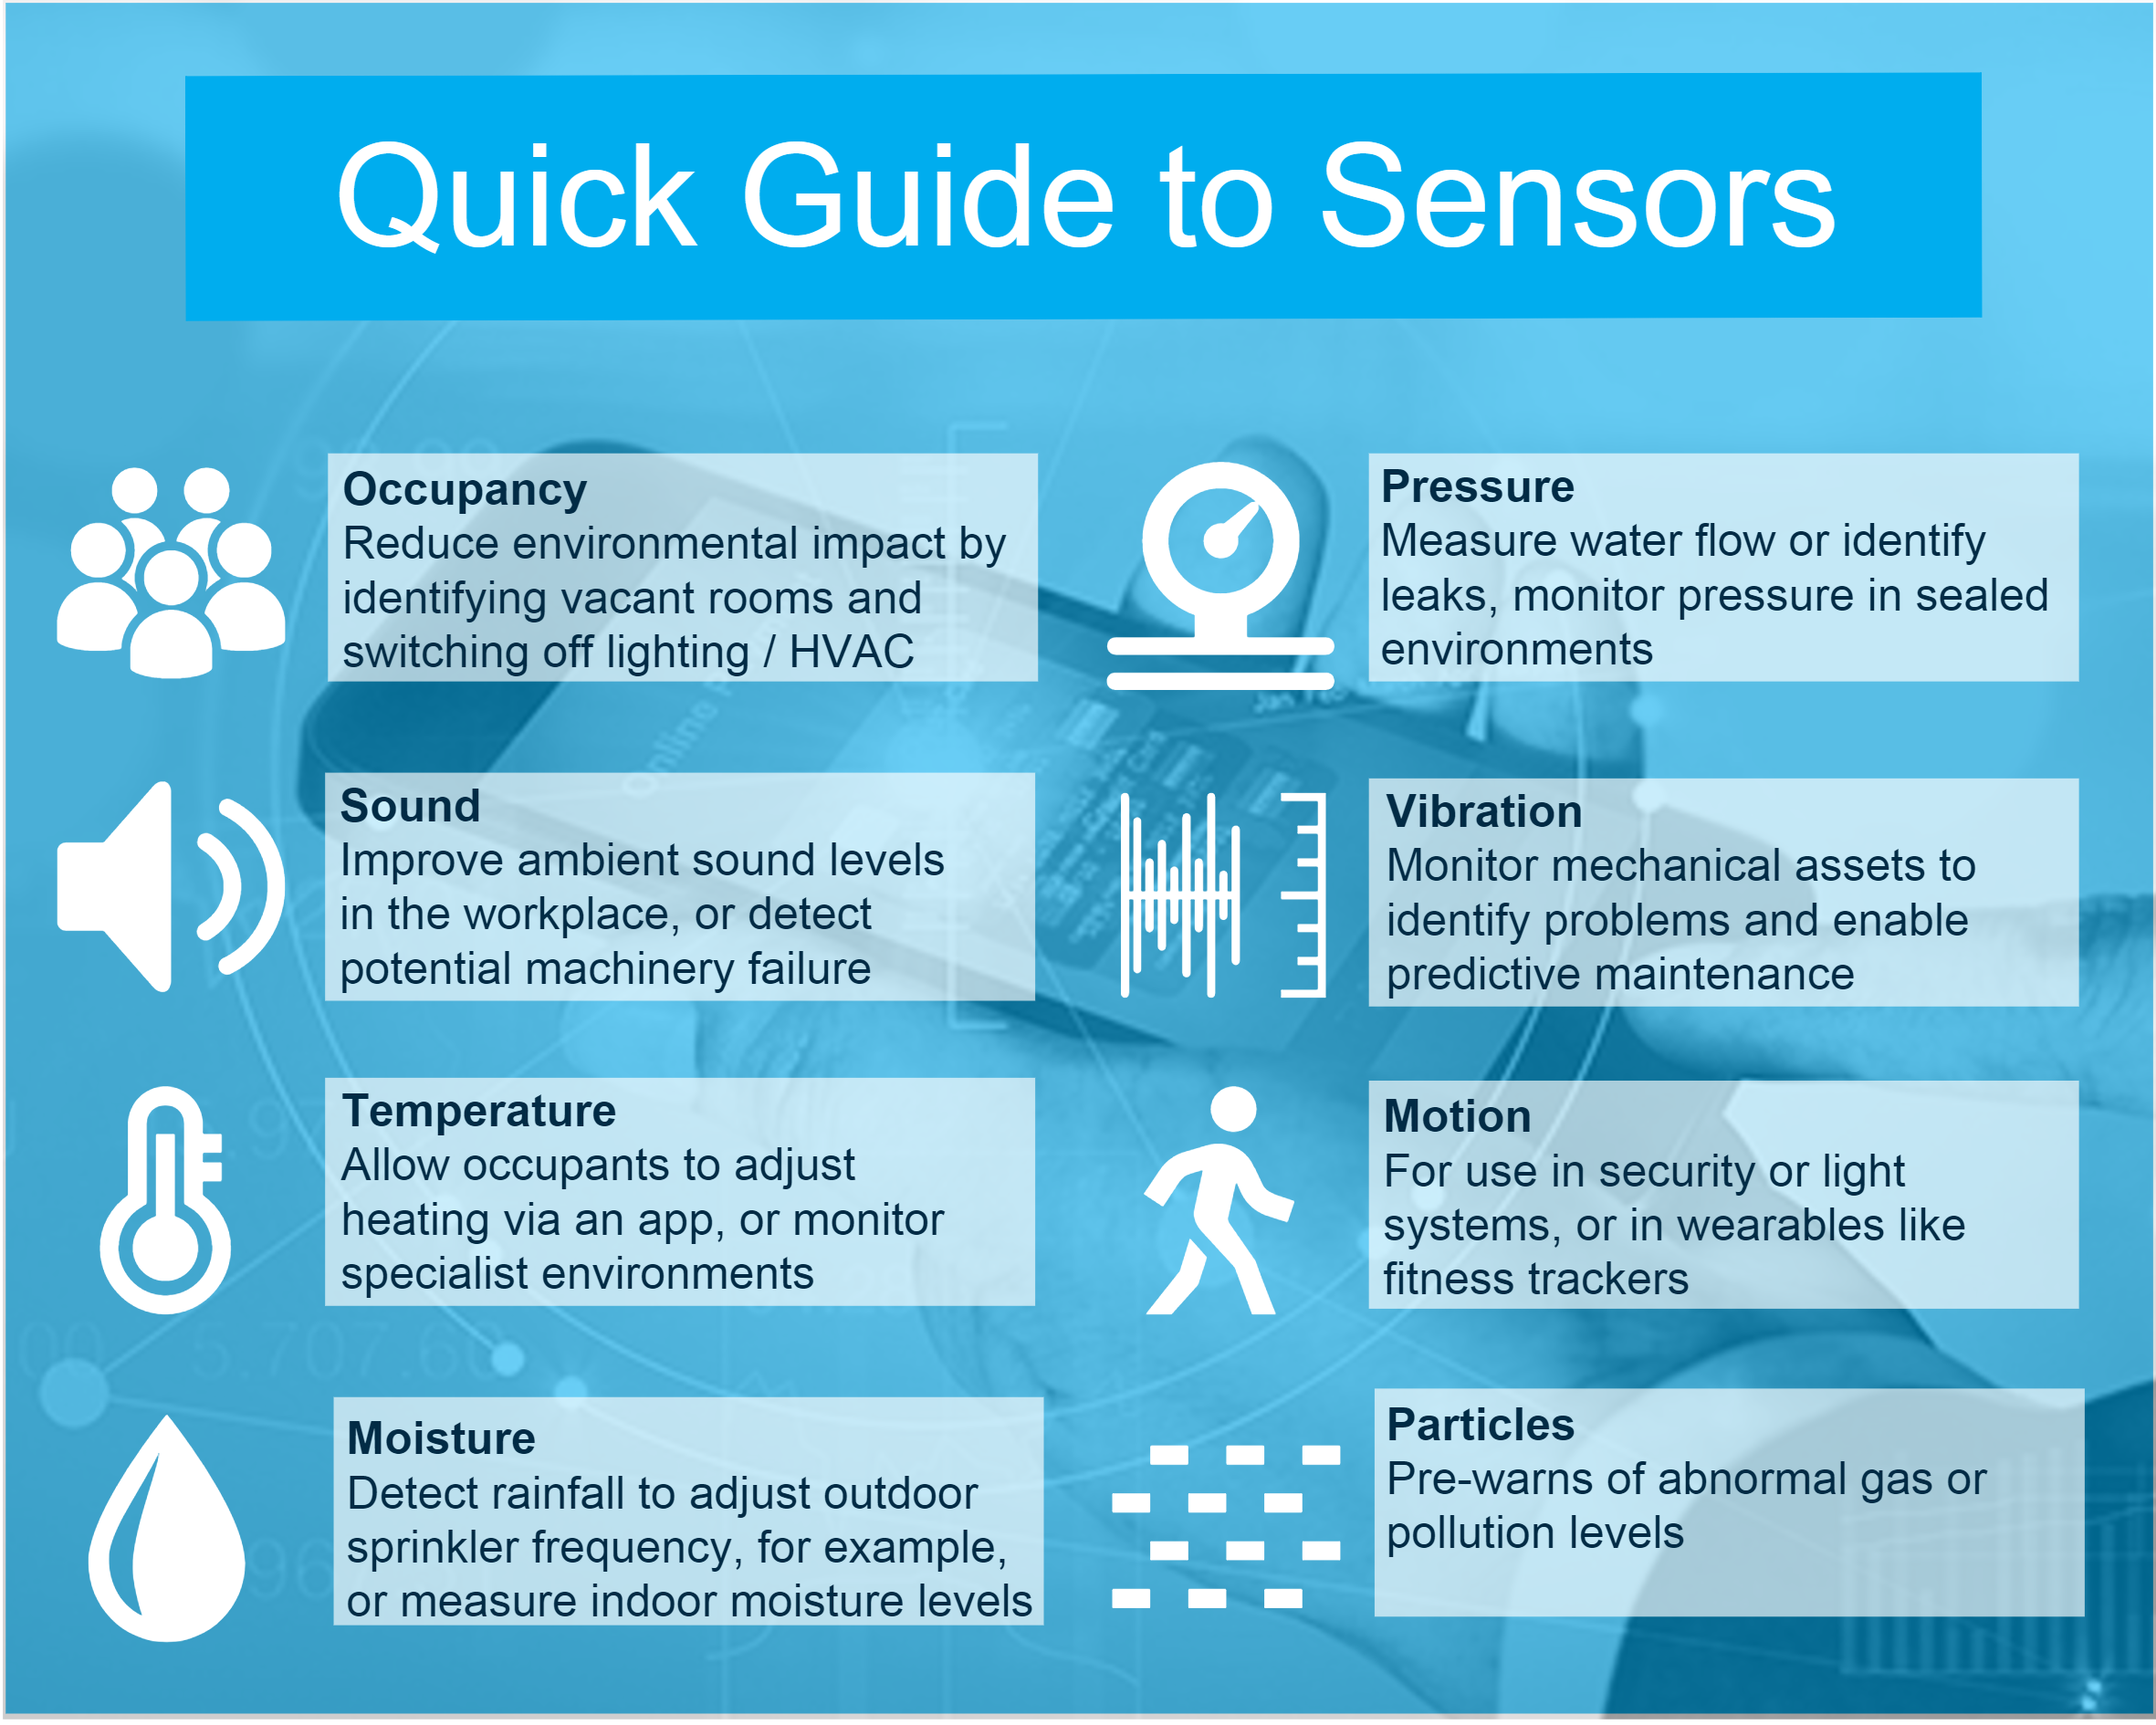 Quick Guide to Sensors Infographic by SWG